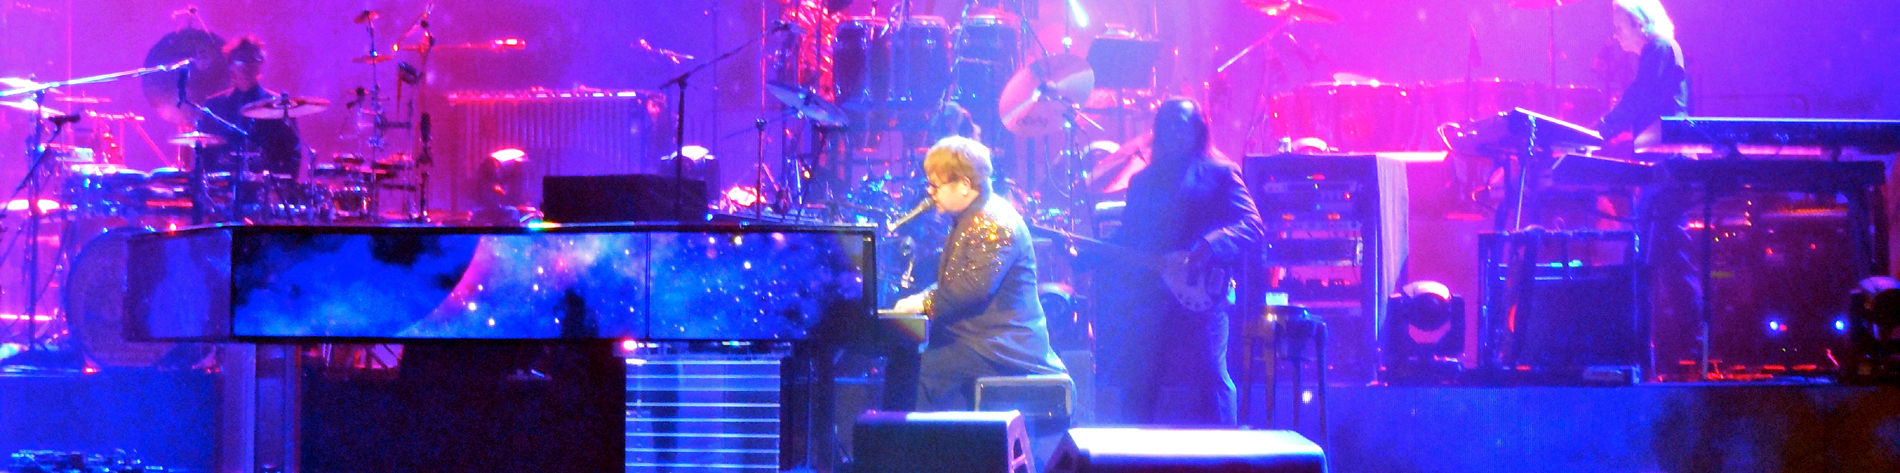 Elton John Perth WA December 1, 2019 Tickets